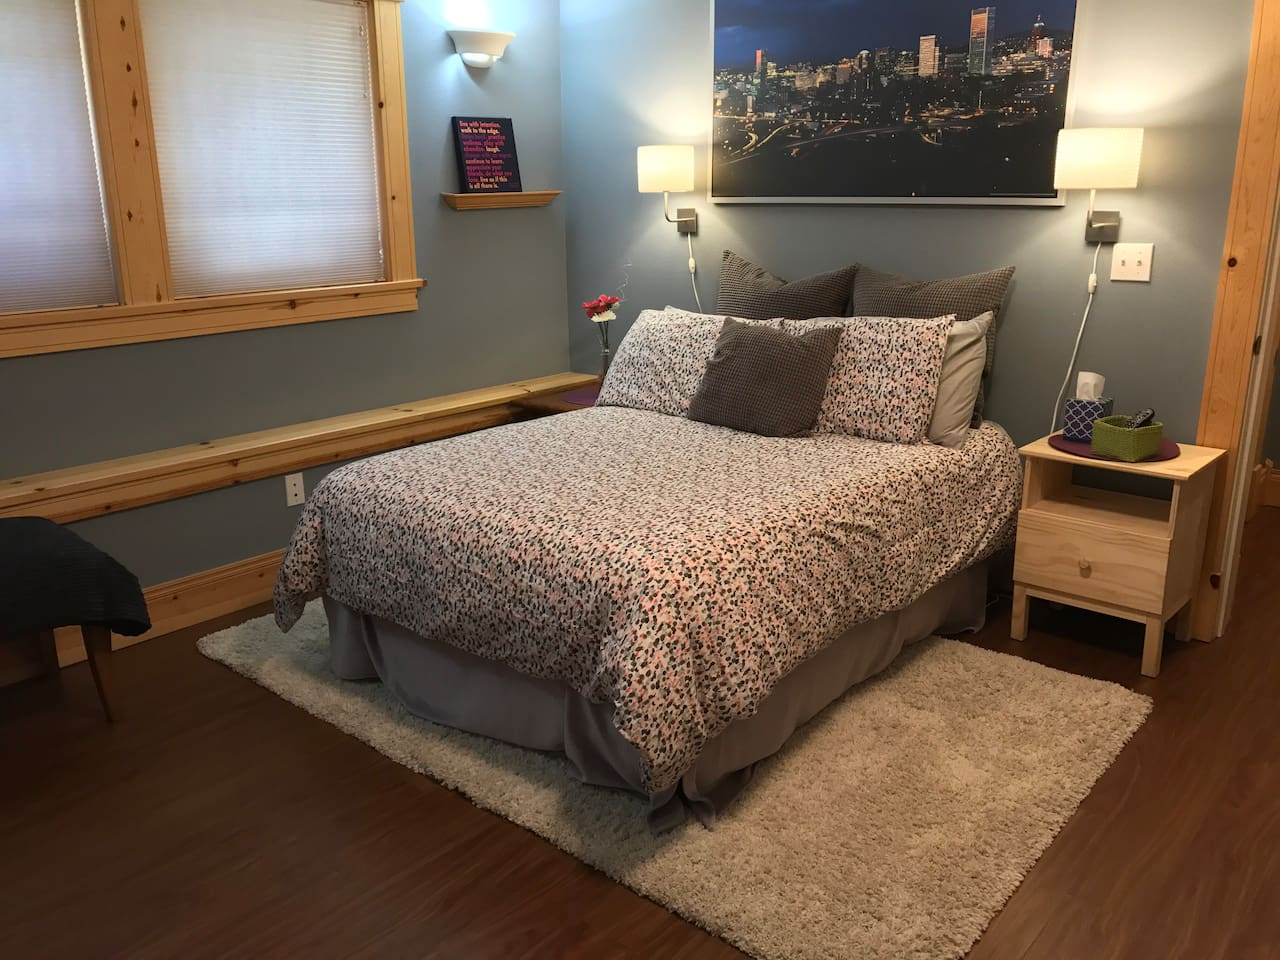 Comfy, new queen bed to rest and get ready to explore the city.